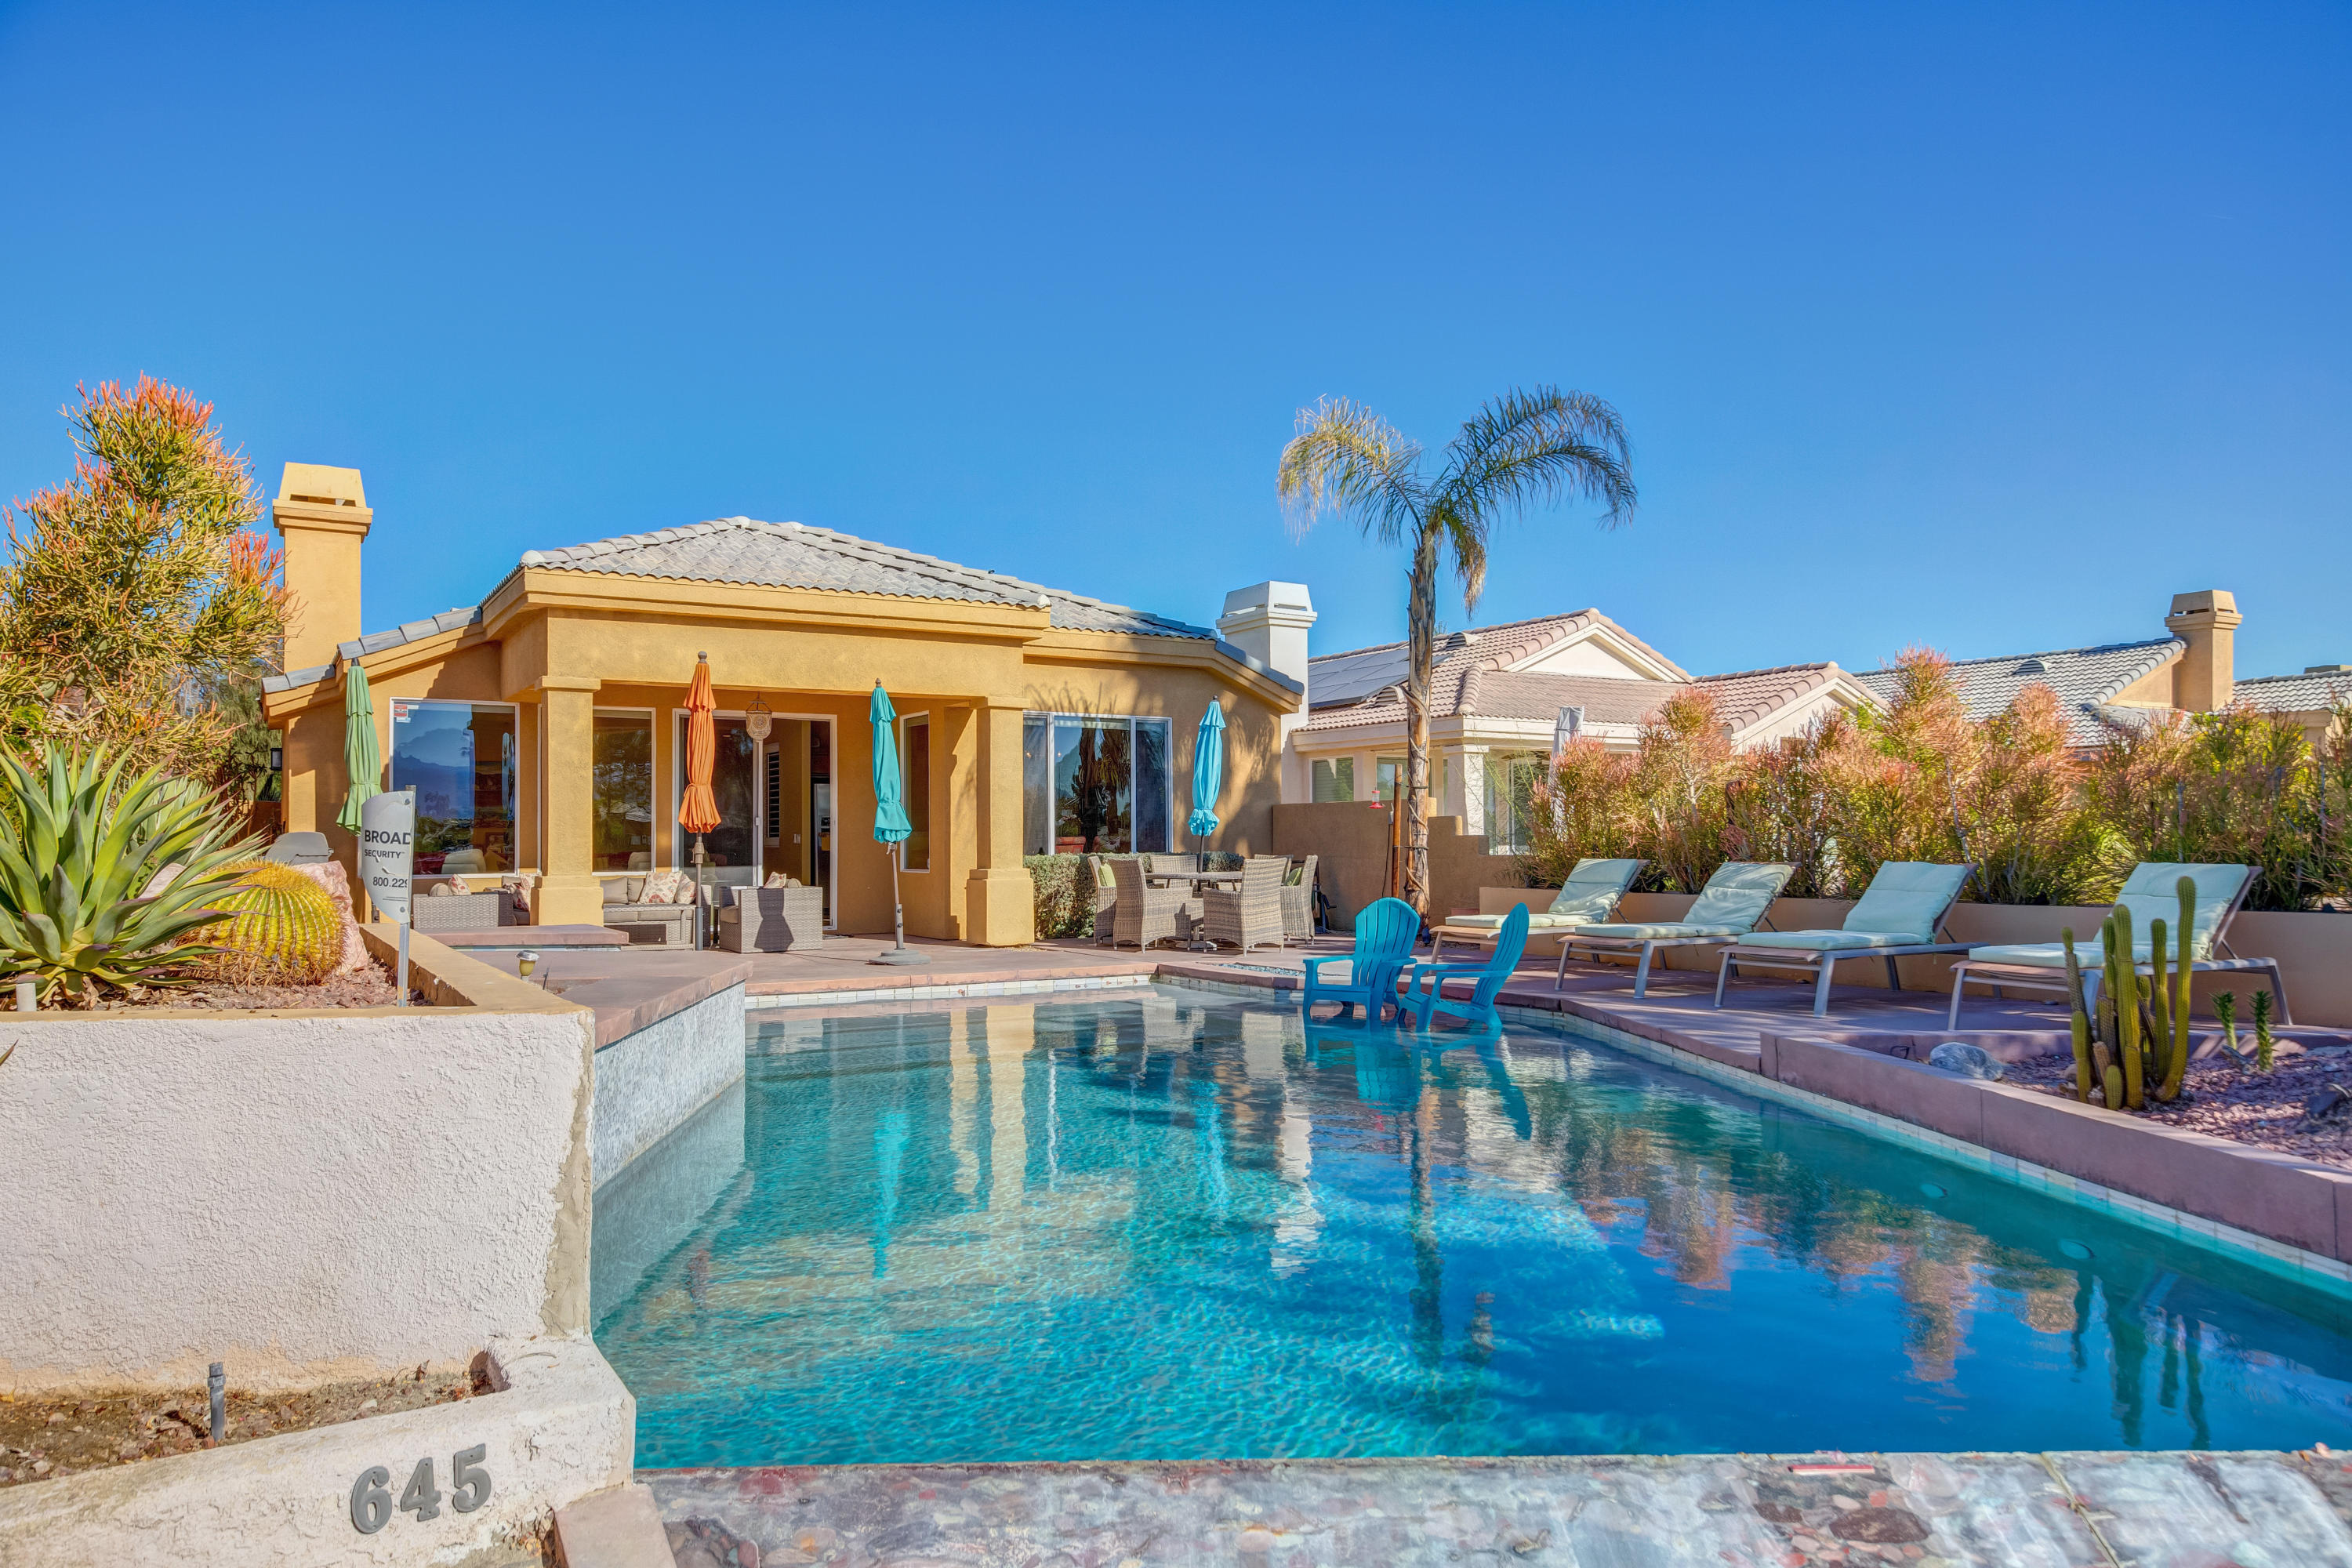 AMAZING INFINITY SALT WATER POOL WITH SPA.  This home is an entertainers dream.  Back patio has it all, South facing views of mountains and course, entertaining area with in ground fire pit.  The home boasts of slab granite countertops, Stainless Steel appliances, travertine stone floors AND remodeled master bath.  Bonus room for extra guests and den is made into a bedroom also.  Pool has new heater.  The Desert Princess community has an affordable 27 hole PGA Championship golf course, no tee time lotteries, no initiation fees, and is rated among the best in the valley by Golf Digest. This quiet community is away from the noise yet less than ten minutes from Palm Springs International Airport. Desert Princess has 34 swimming pools, 10 Tennis Courts, Health and Fitness Center.  Land Lease thru 2069, monthly ground rent is $105.13.